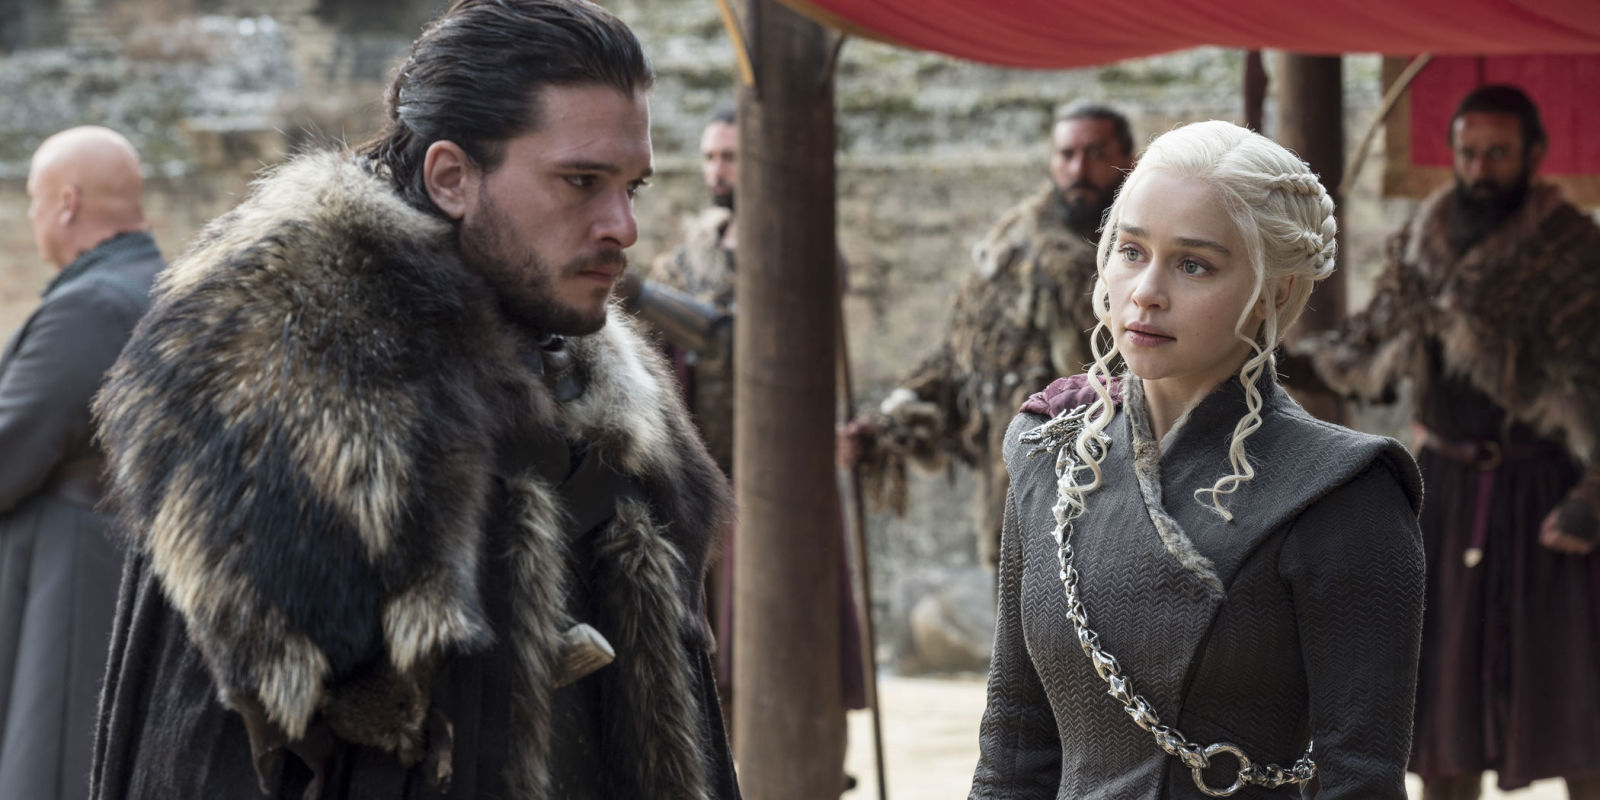 Game of thrones publish date in Sydney